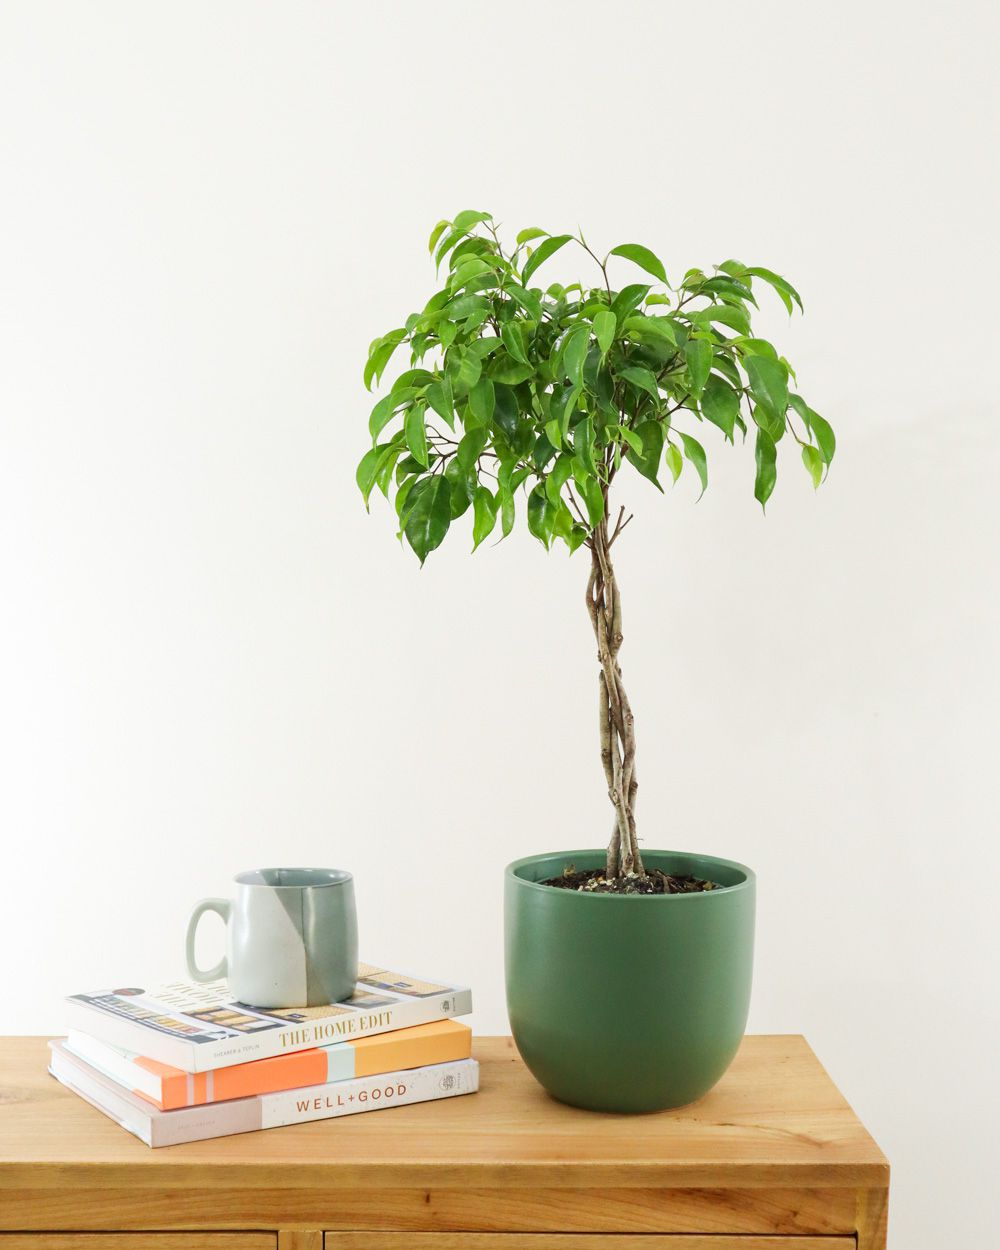 Braided weeping fig in a green pot on a wood dresser